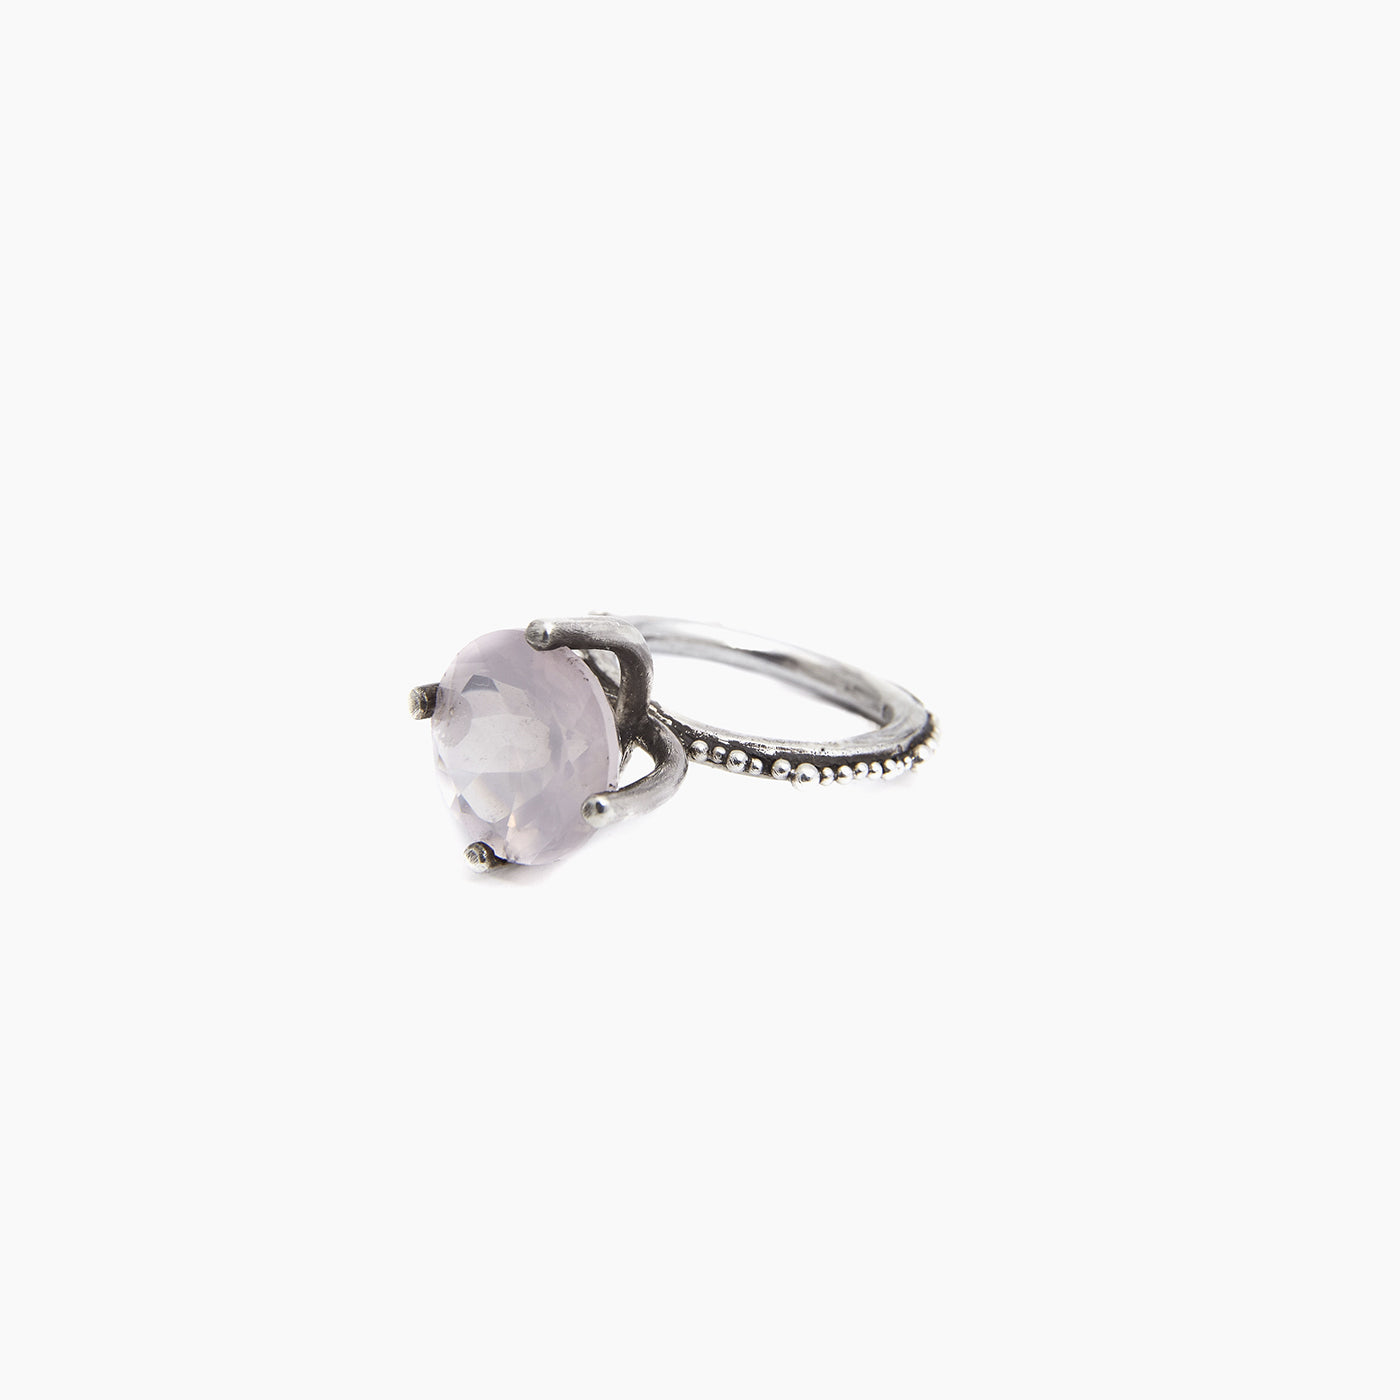 INNAN Jewellery designer Cenote Pearl Rose Ring in sterling silver with rose quartz handmade in Berlin